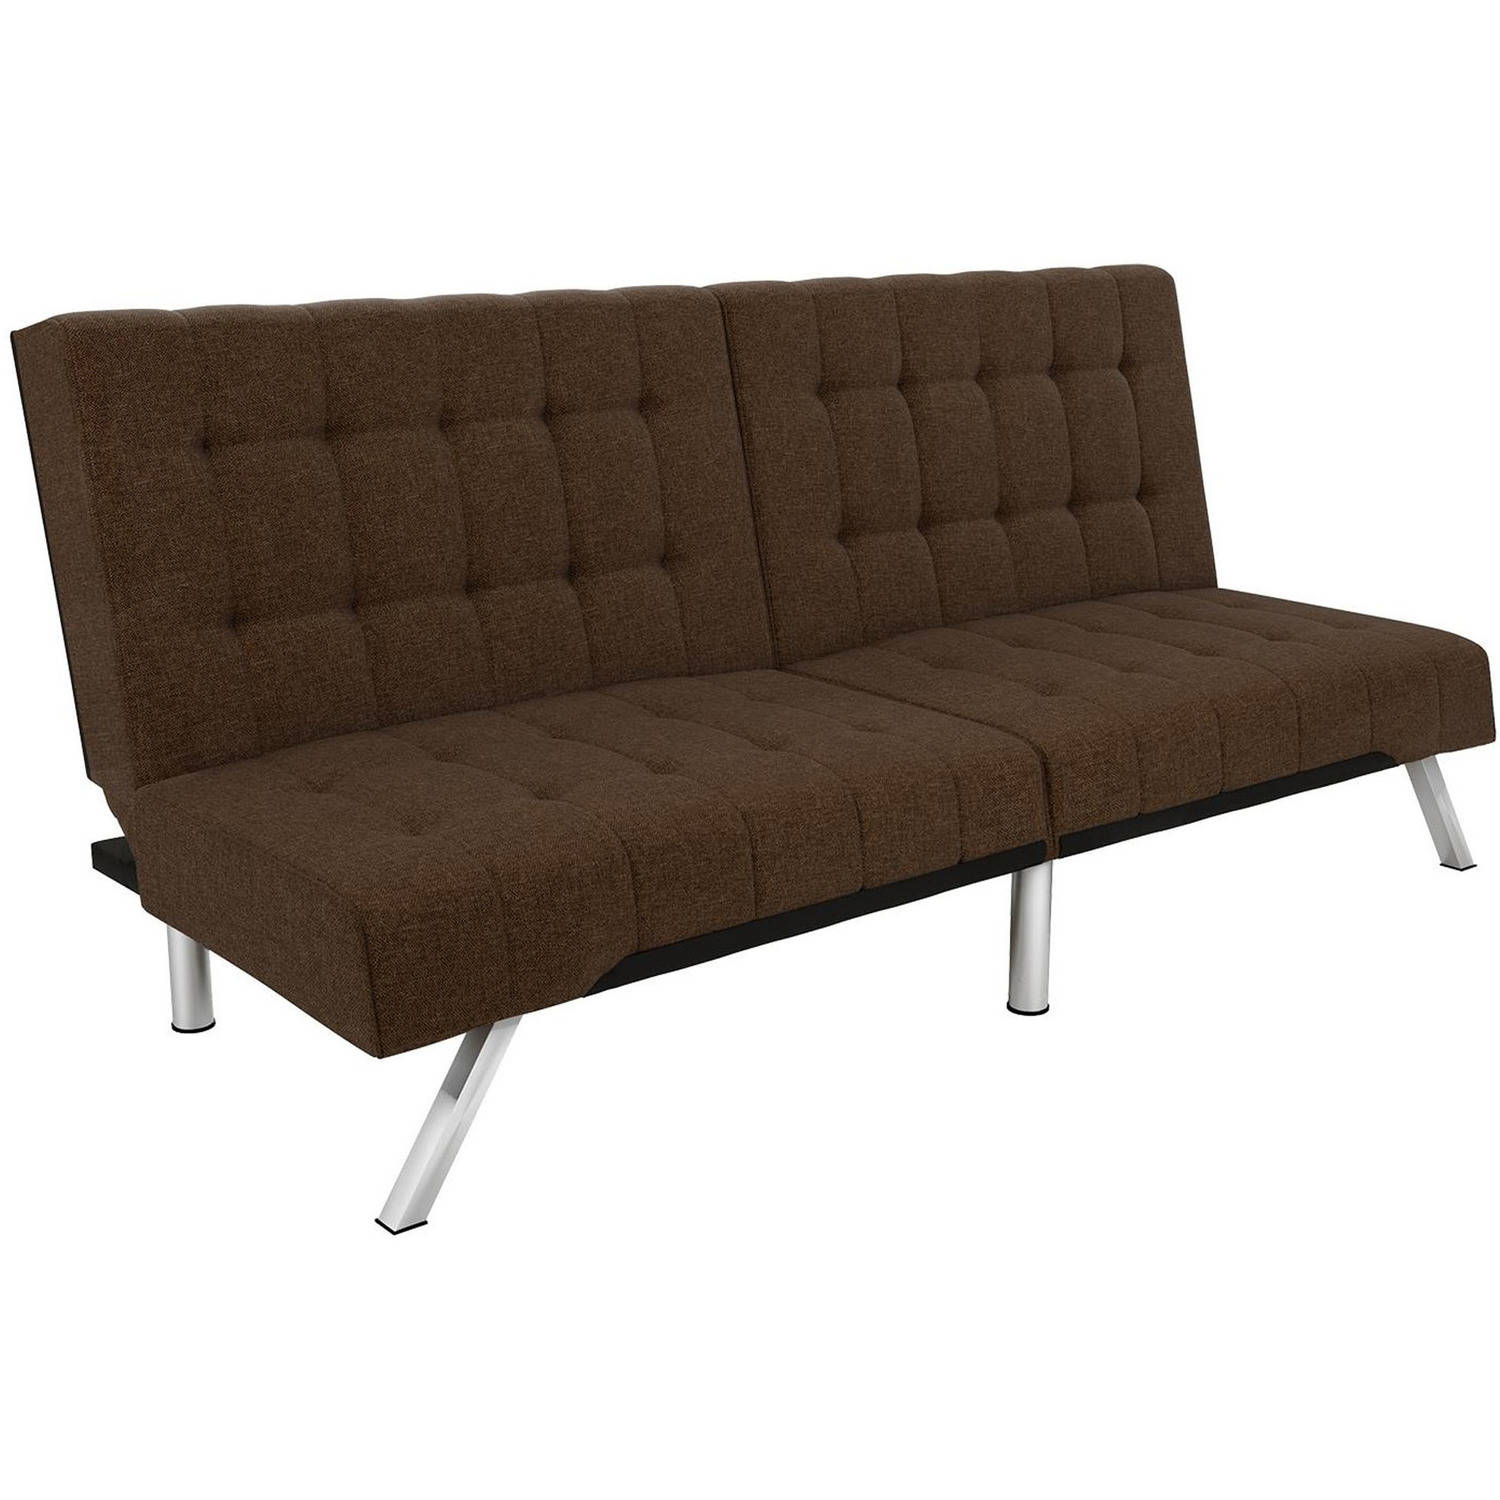 DHP Emily Convertible Futon Sofa Couch, Multiple Colors by Dorel Home Products